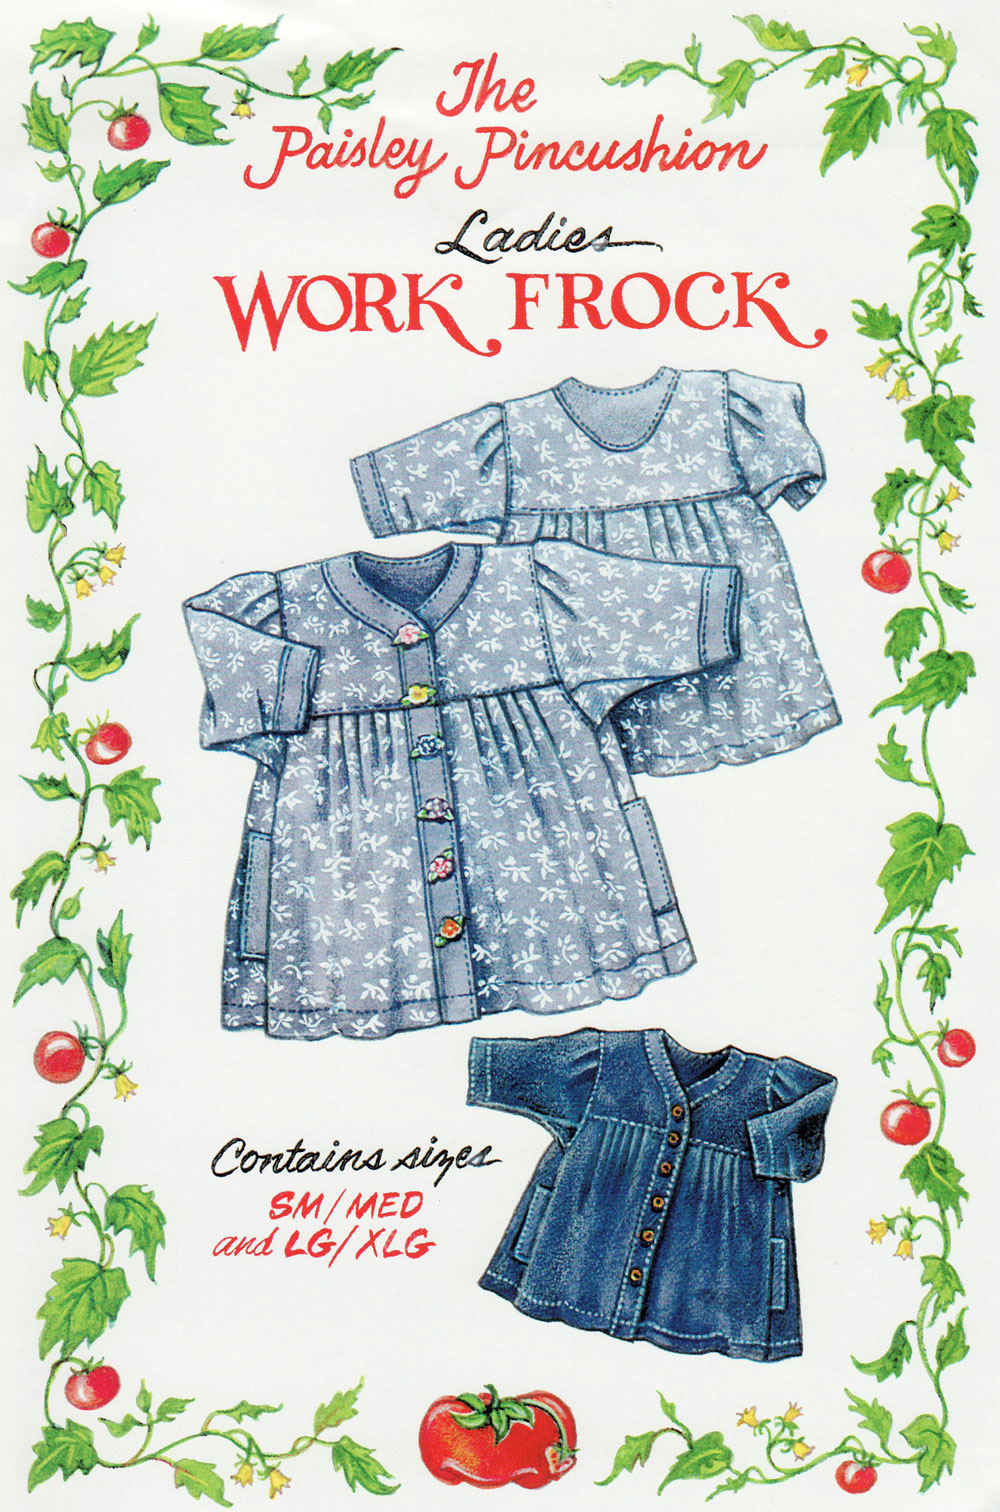 work-frock-apron-sewing-pattern-paisley-pincushion-front